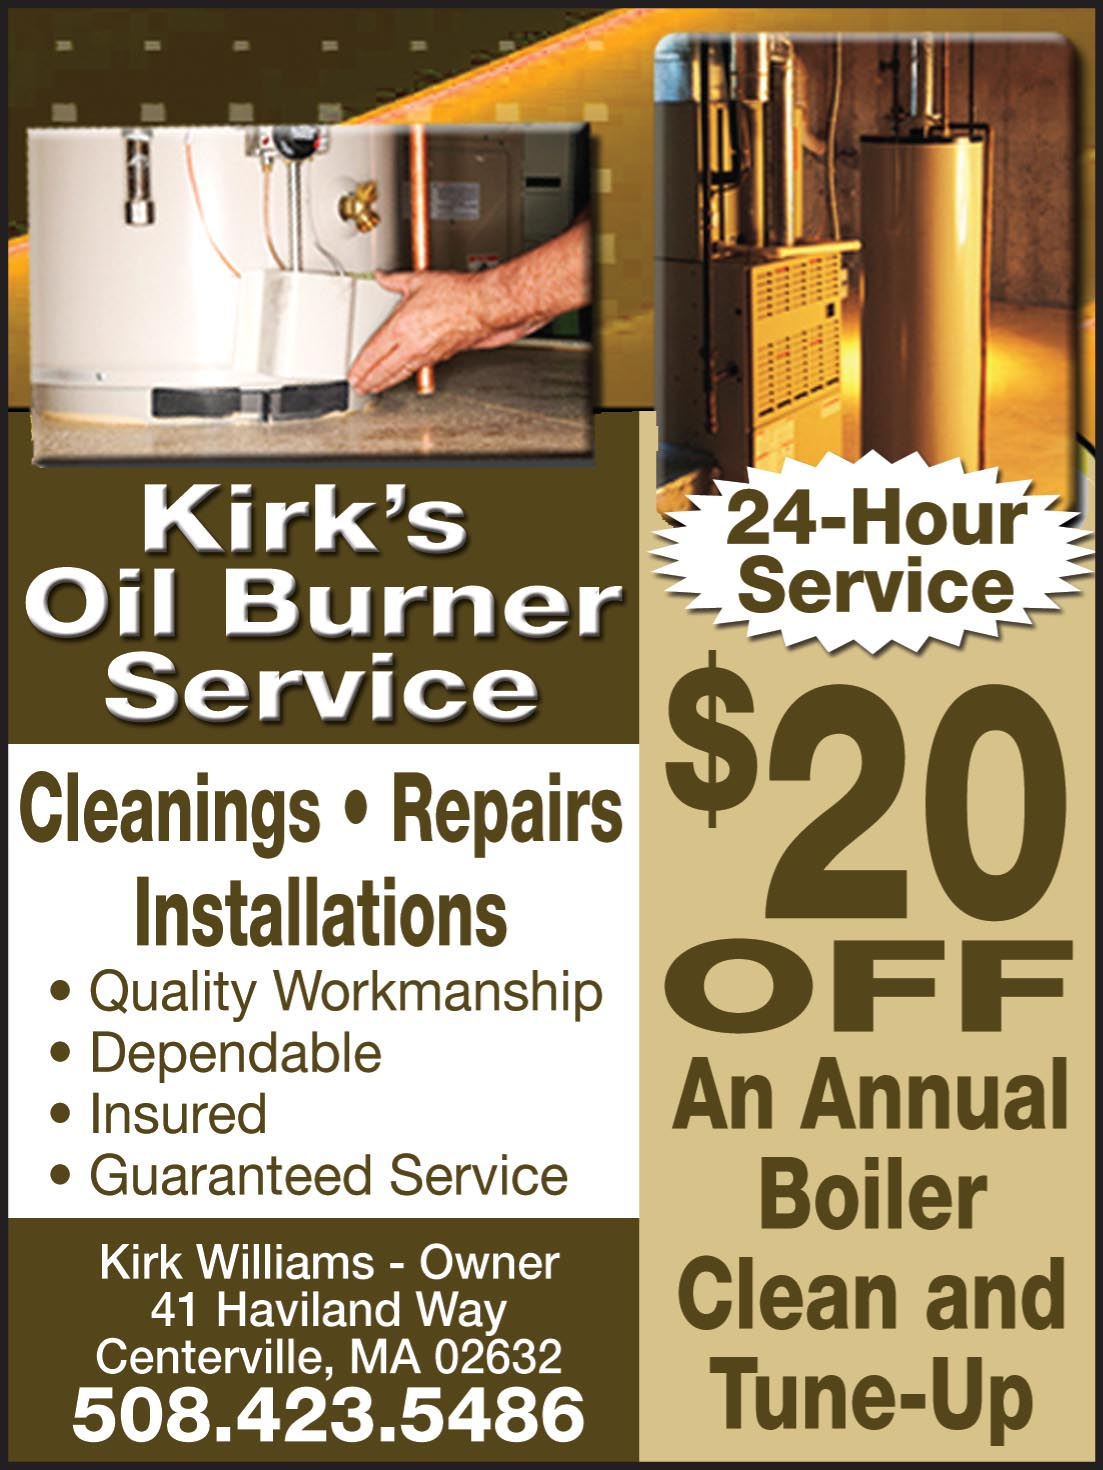 Oil Burner Service Cape Cod Homeowners Resource Guide